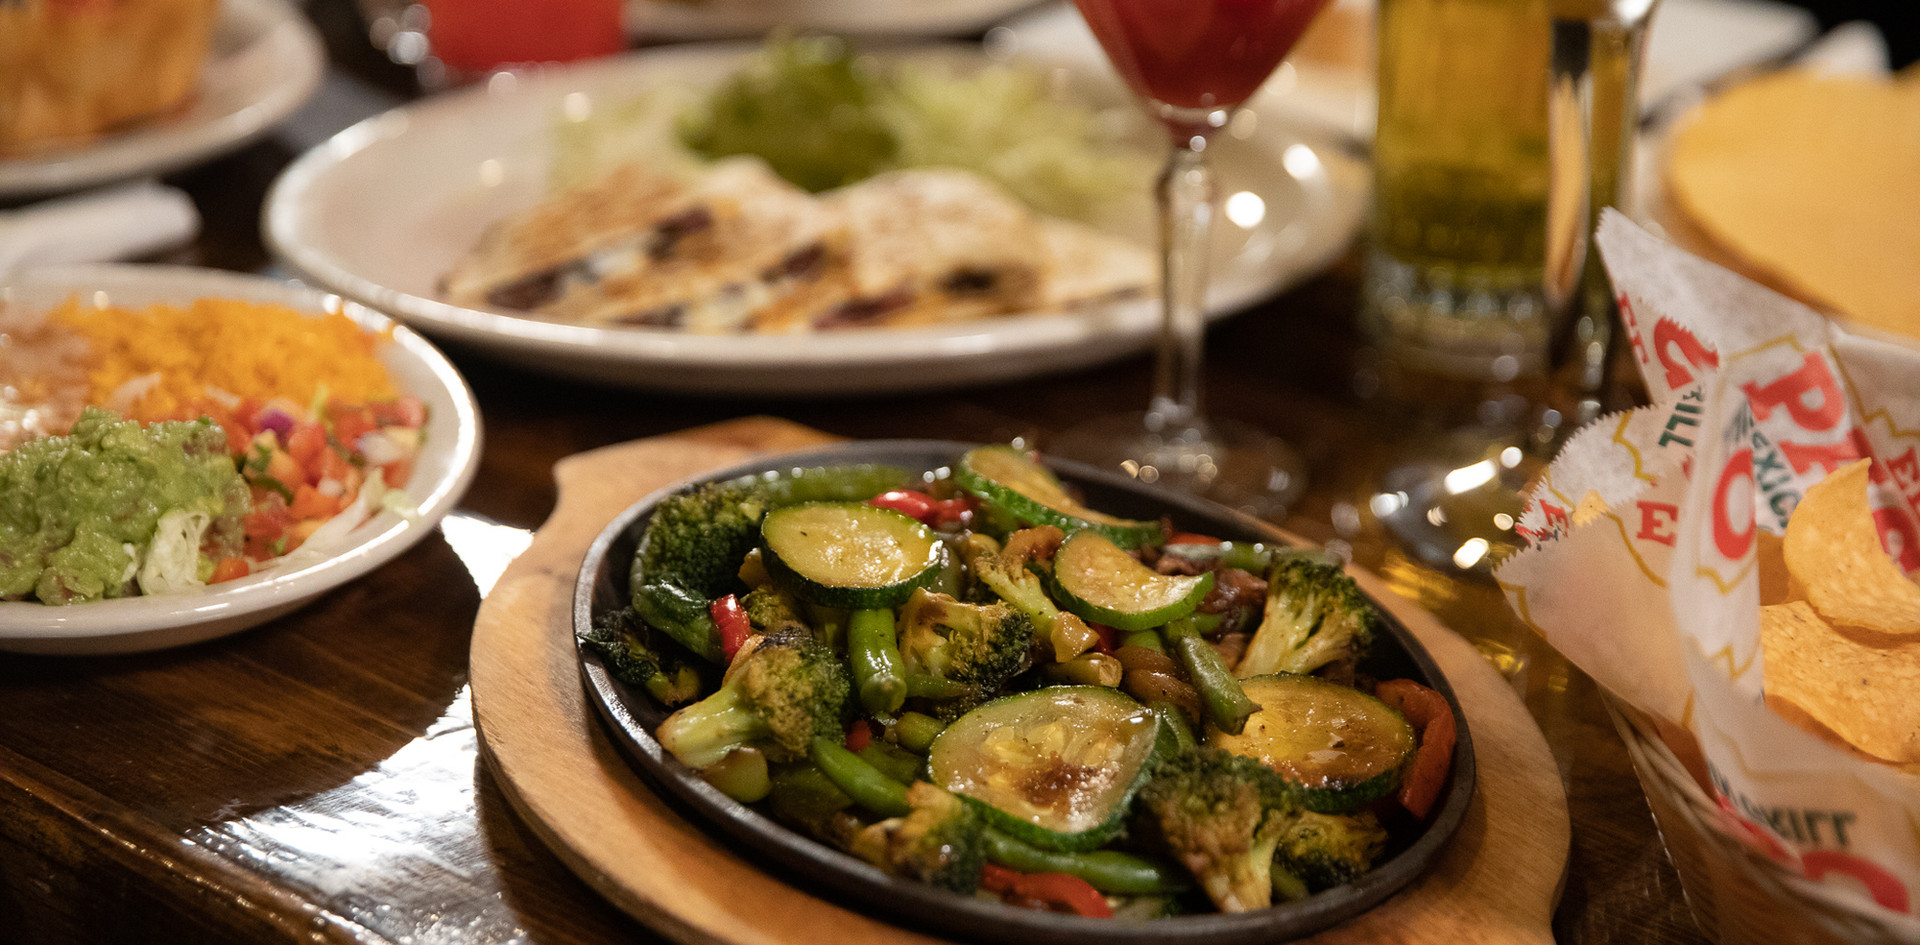 vegetarian dishes and dining table